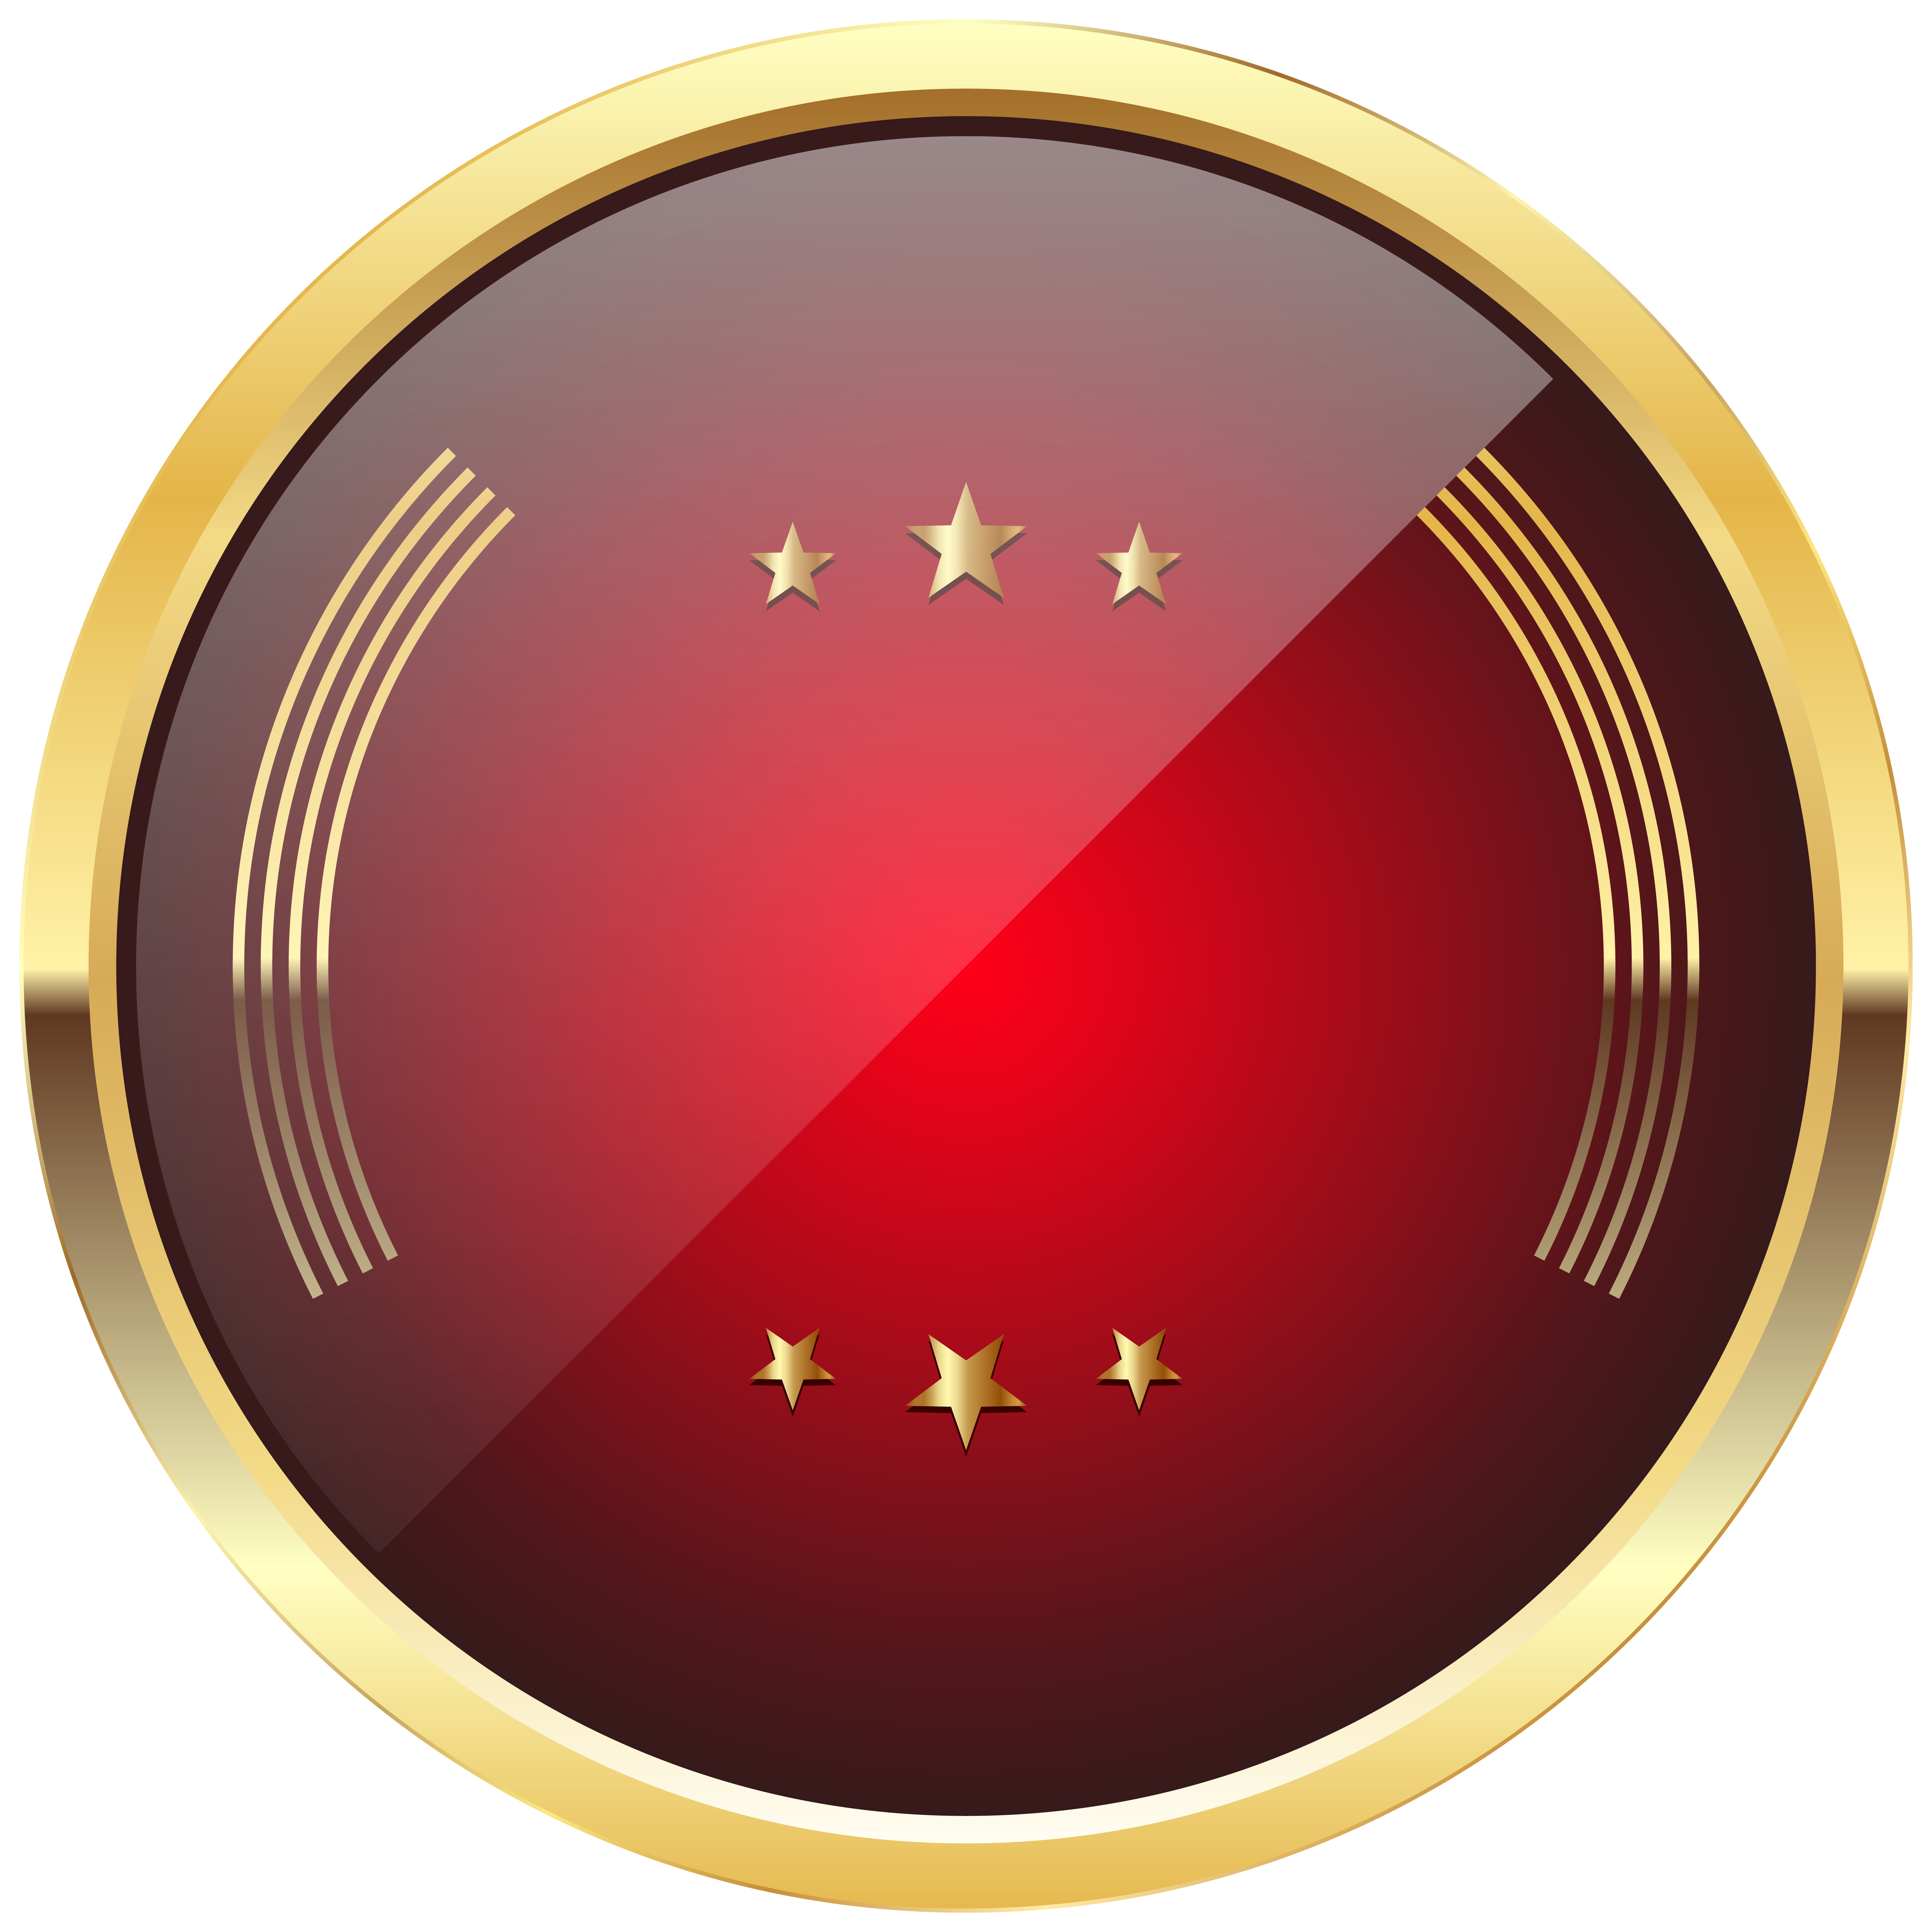 Badge transparent png. Red template clip art